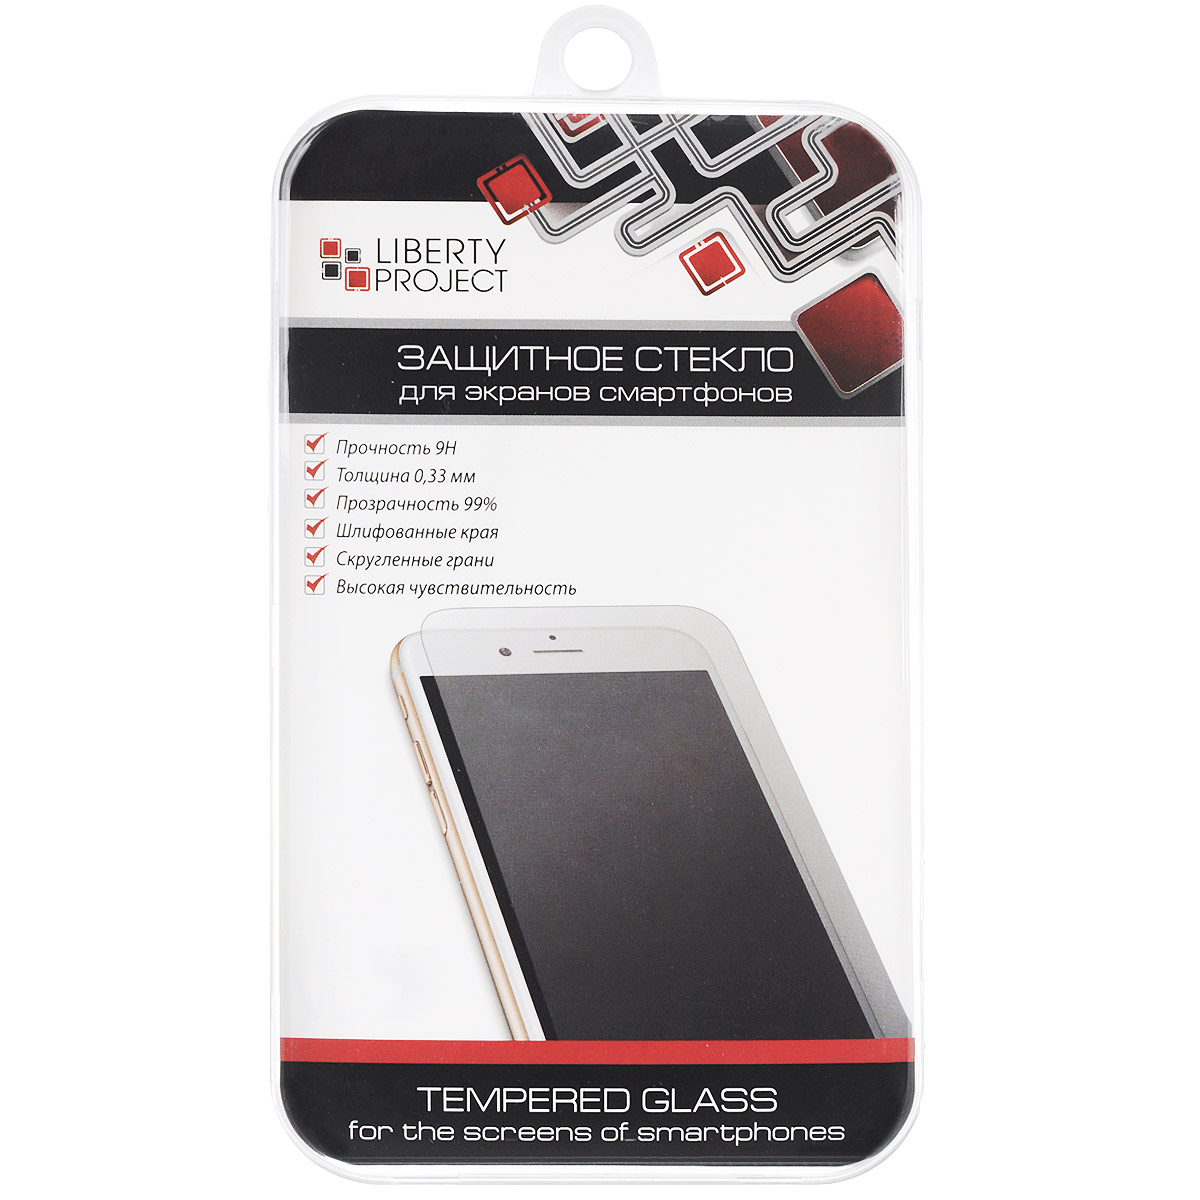 Liberty Project Tempered Glass защитное стекло для iPhone 5/5s/5c, Clear (0.33 мм) aluminum project box splitted enclosure 25x25x80mm diy for pcb electronics enclosure new wholesale